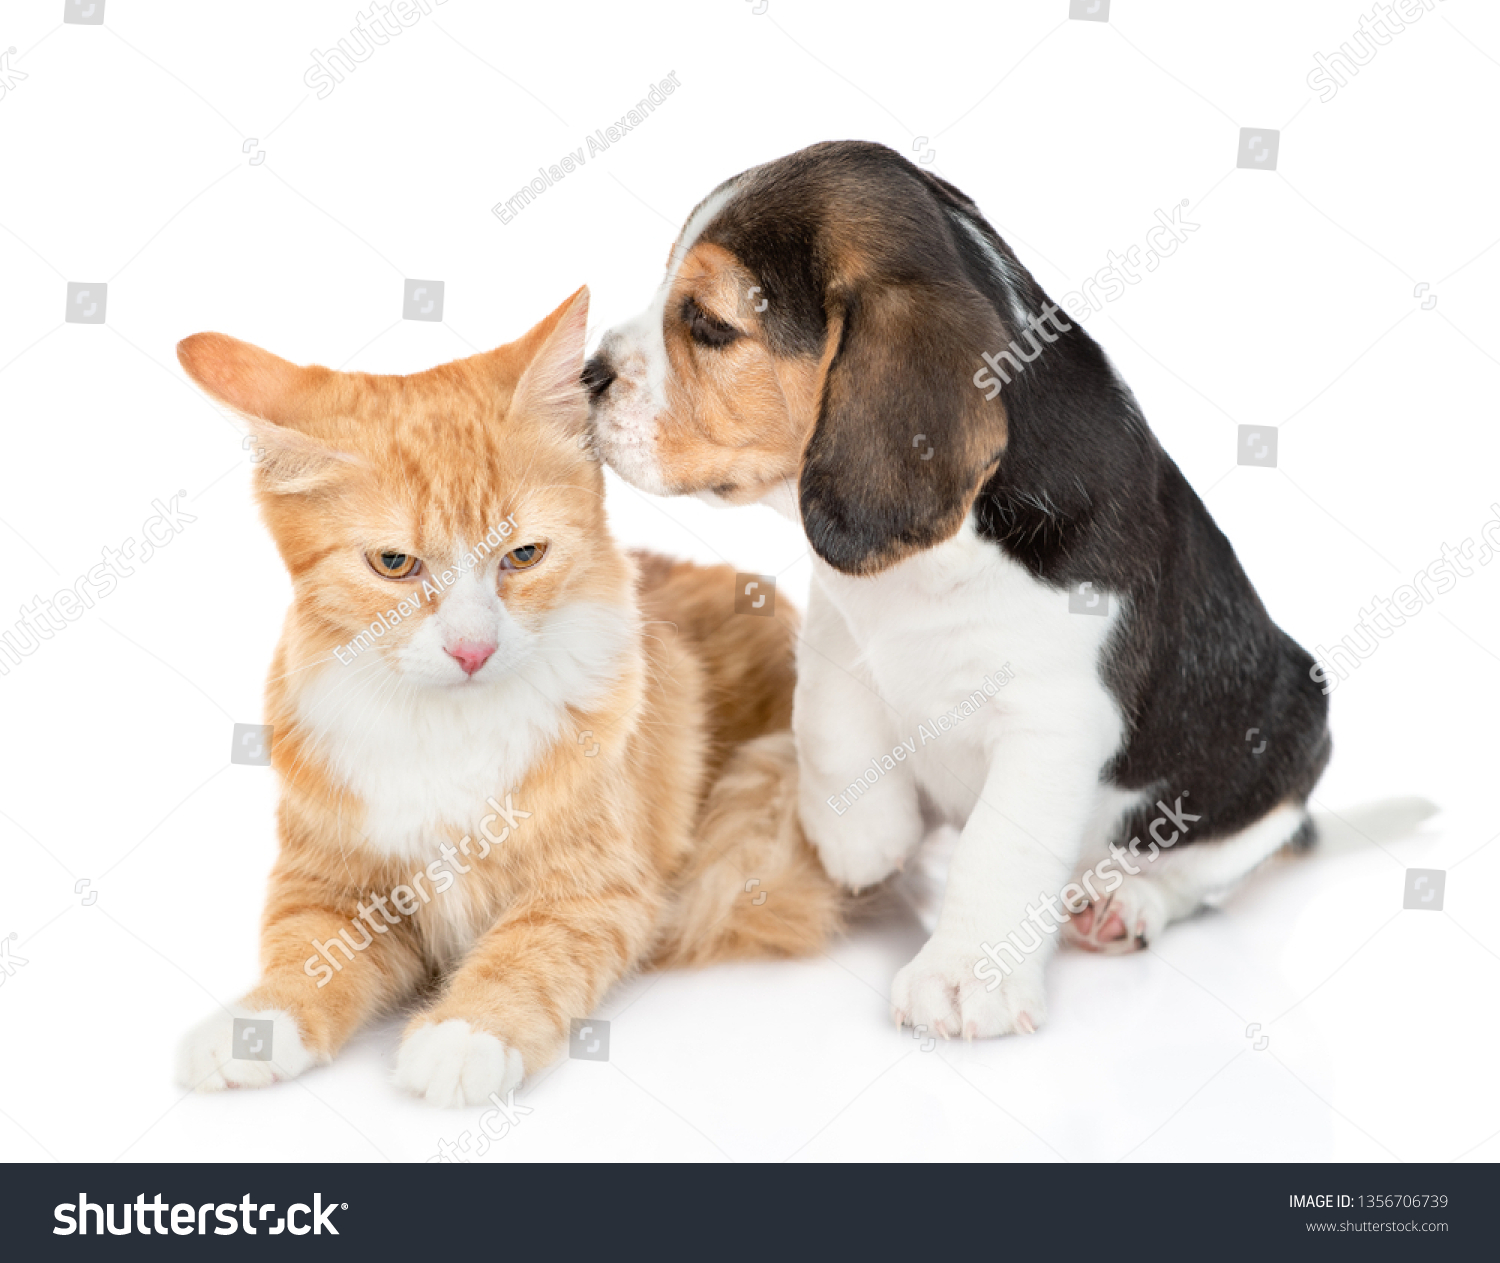 Beagle Puppy Sniffing Red Tabby Cat Stock Photo Edit Now 1356706739